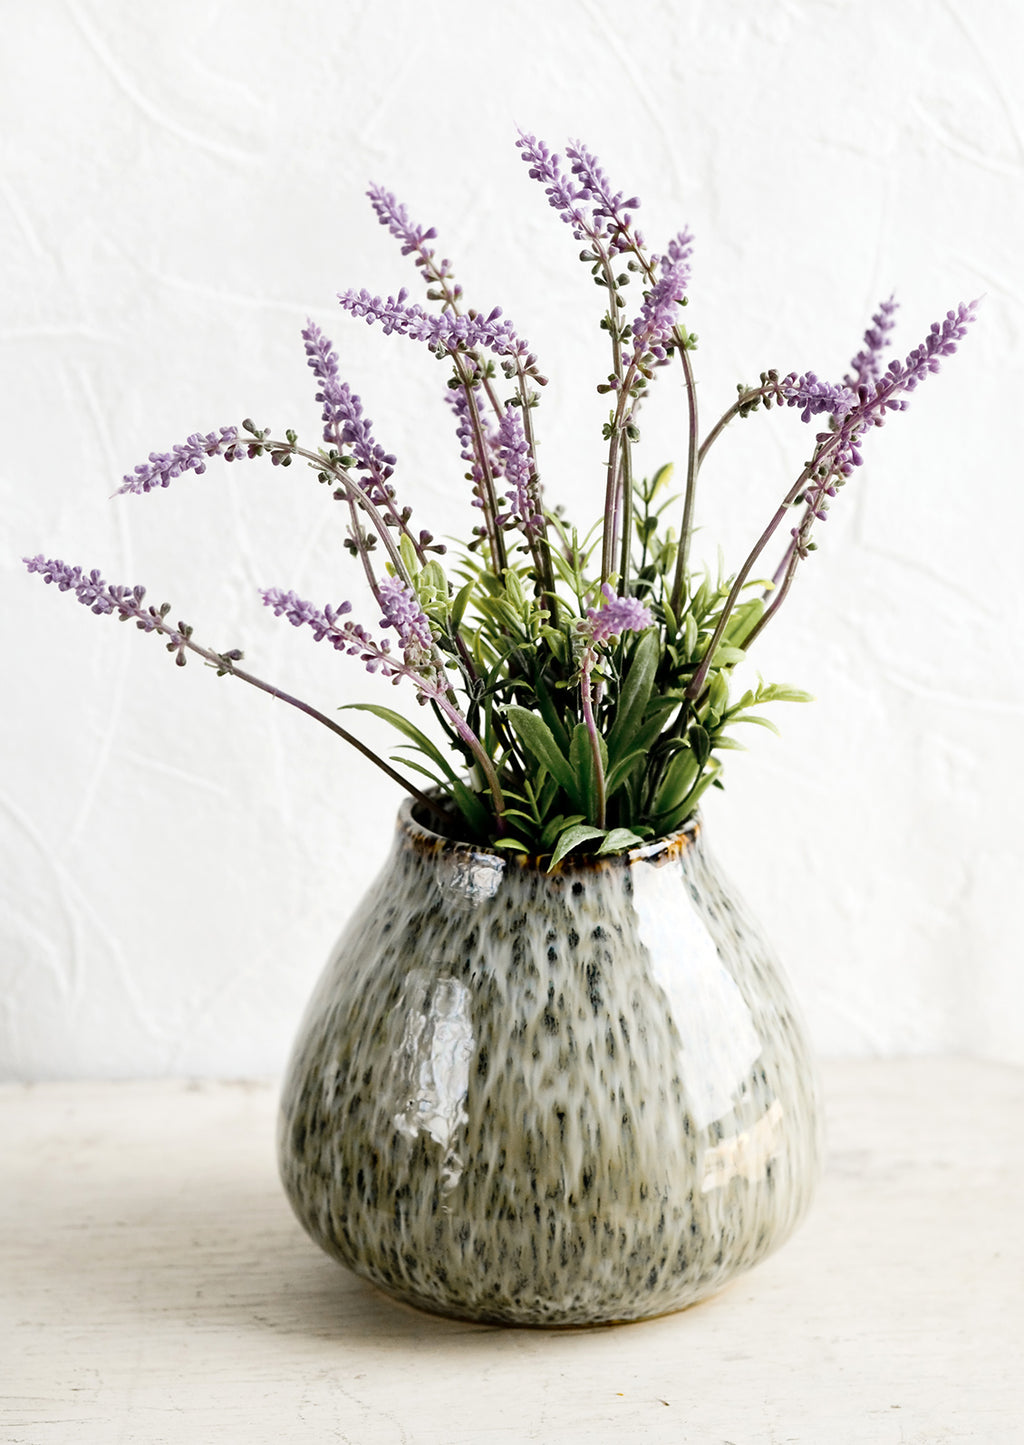 2: A round vase in glossy, speckled green glaze with lavender flowers.